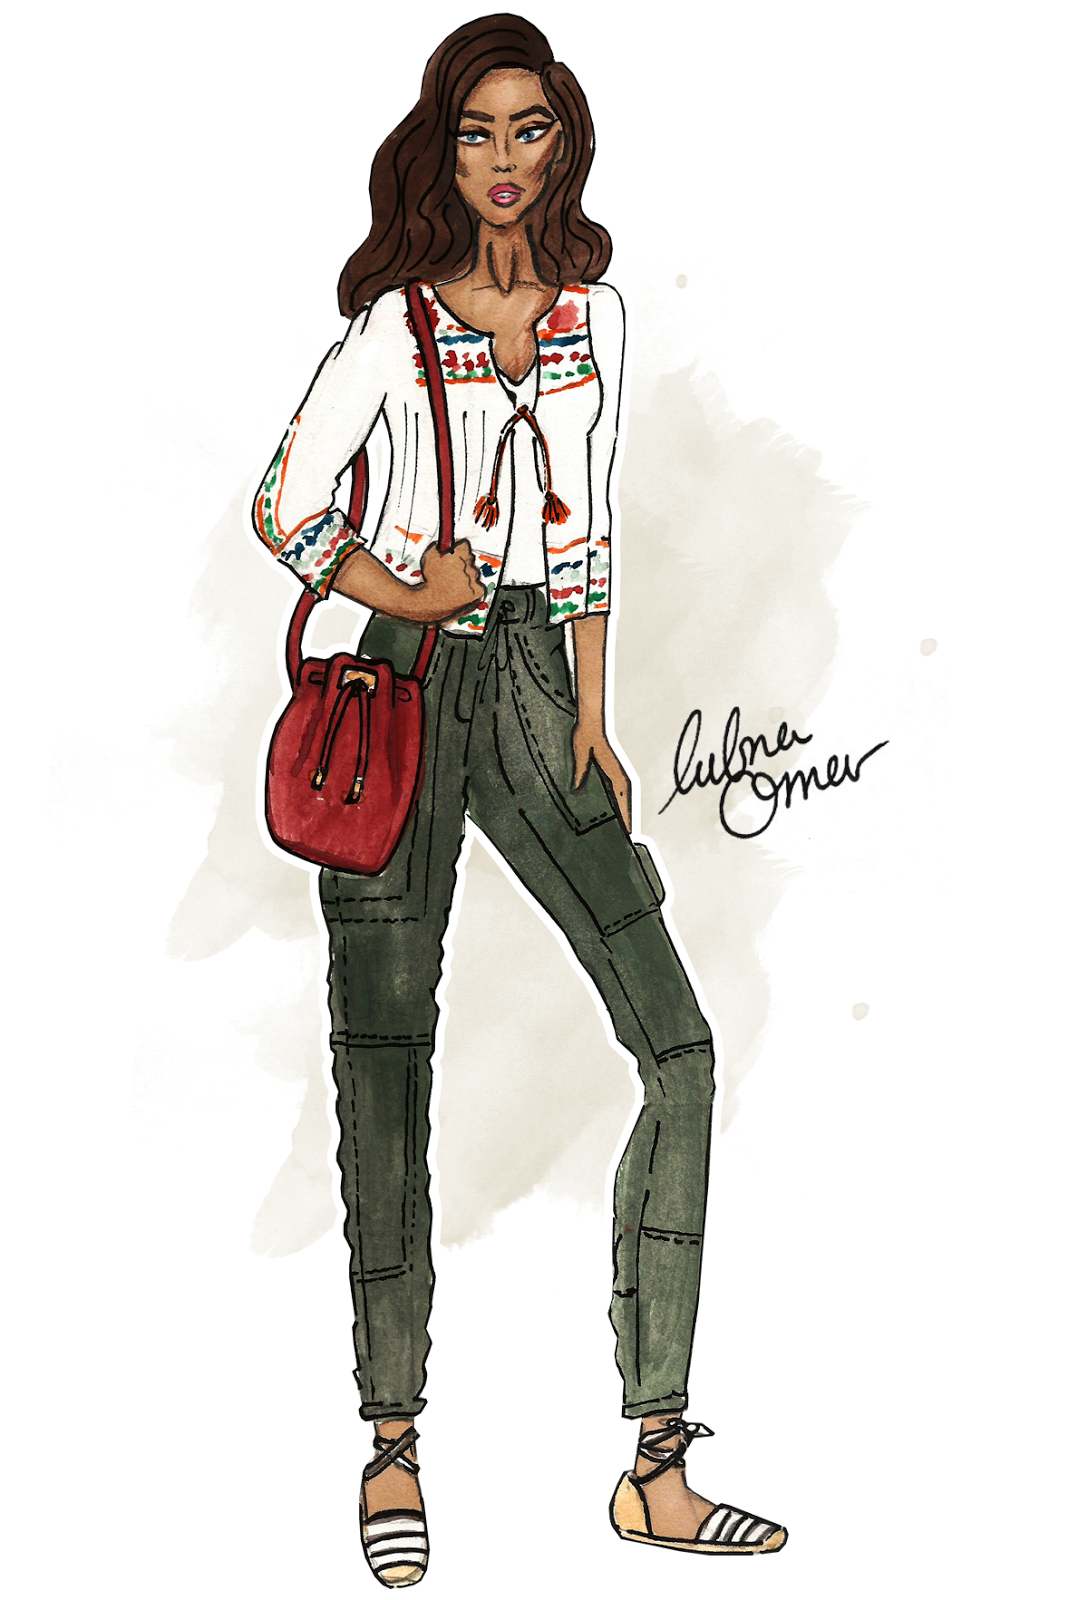 back to school outfit inspiration shades of fall illustration by lubna omar